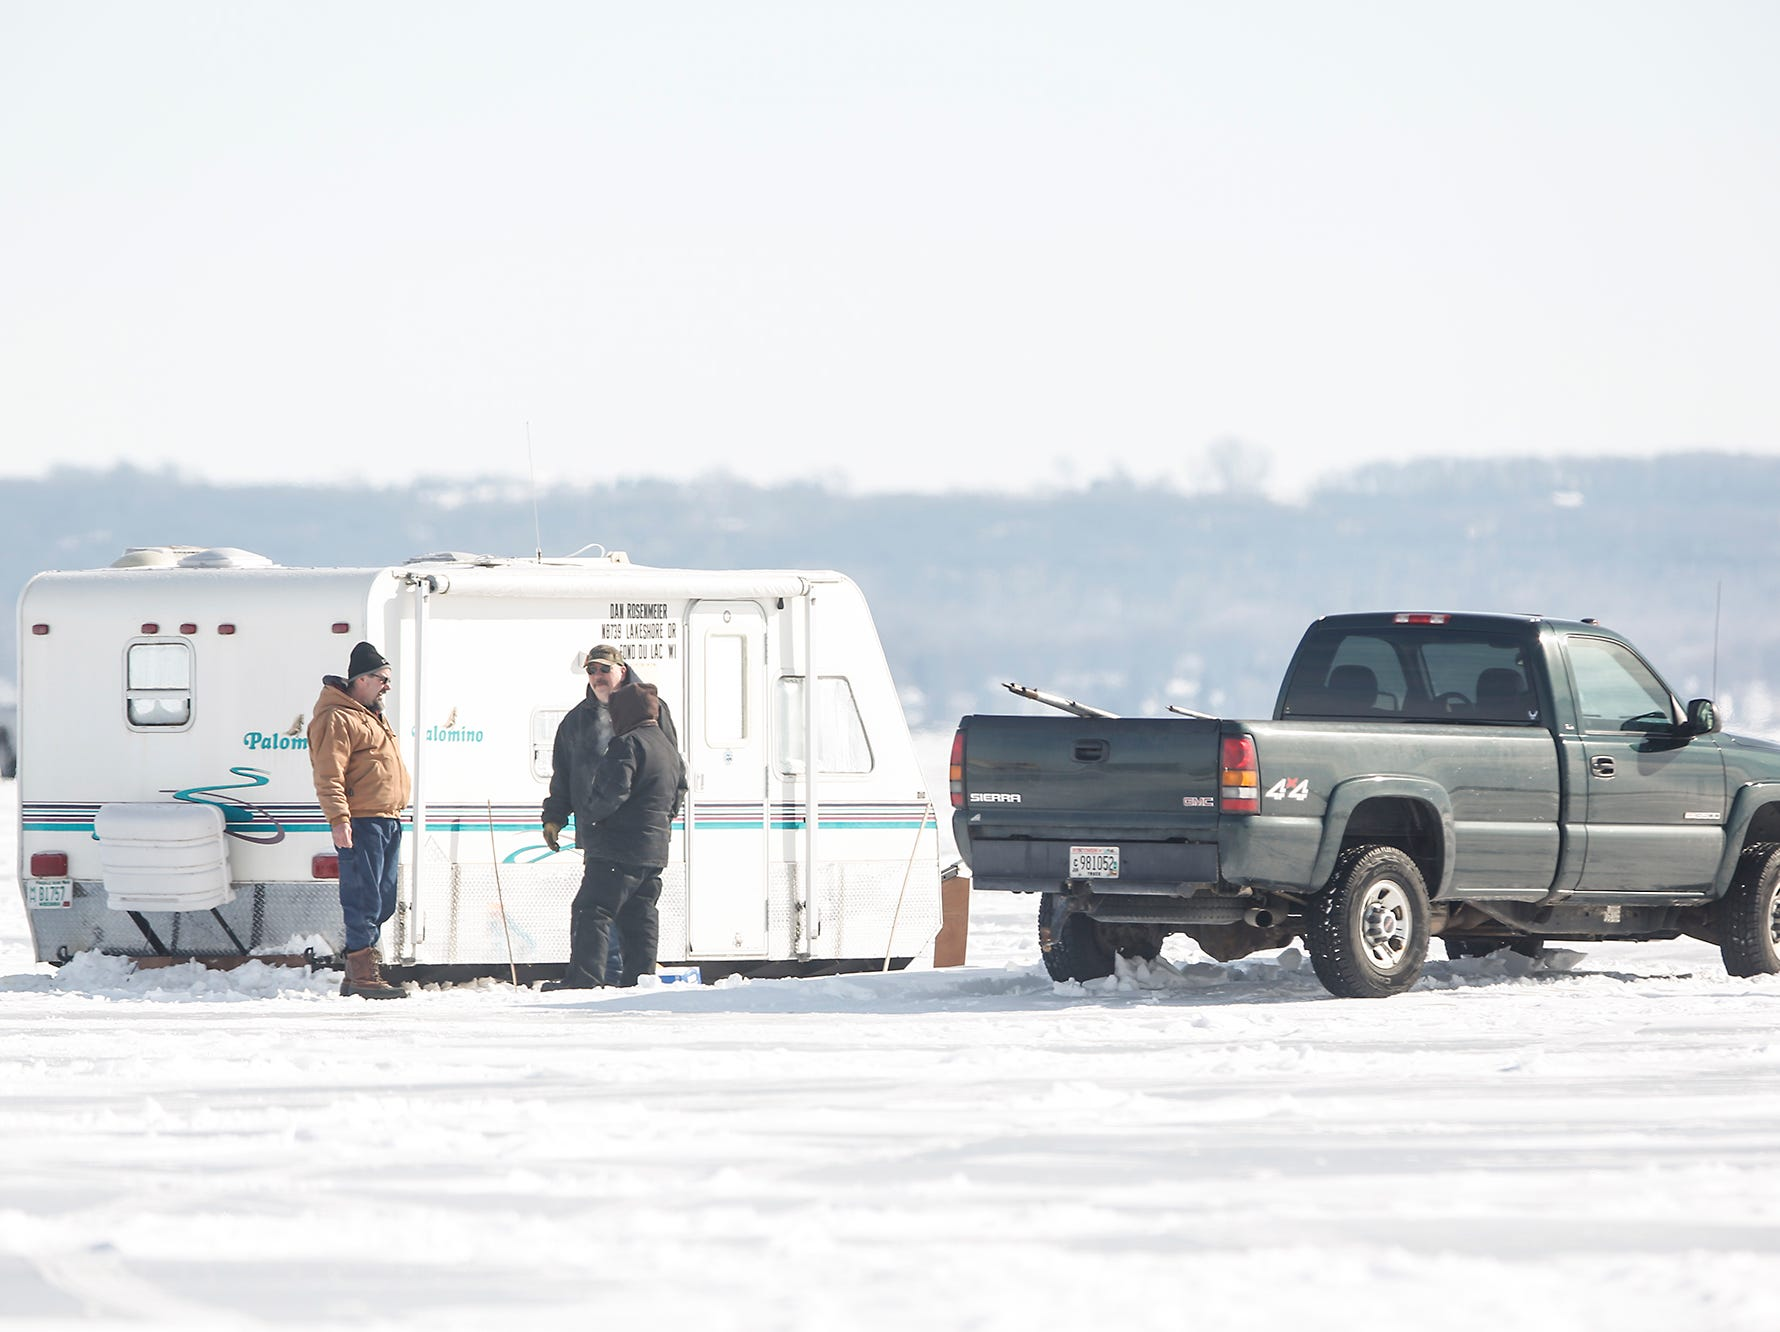 Three people stand outside a fish shanty Saturday, February 9, 2019 on Lake Winnebago between Fond du Lac and Oshkosh. Sturgeon spearing season runs from February 9, 2019 through February 24, 2019 on Lake Winnebago or until any